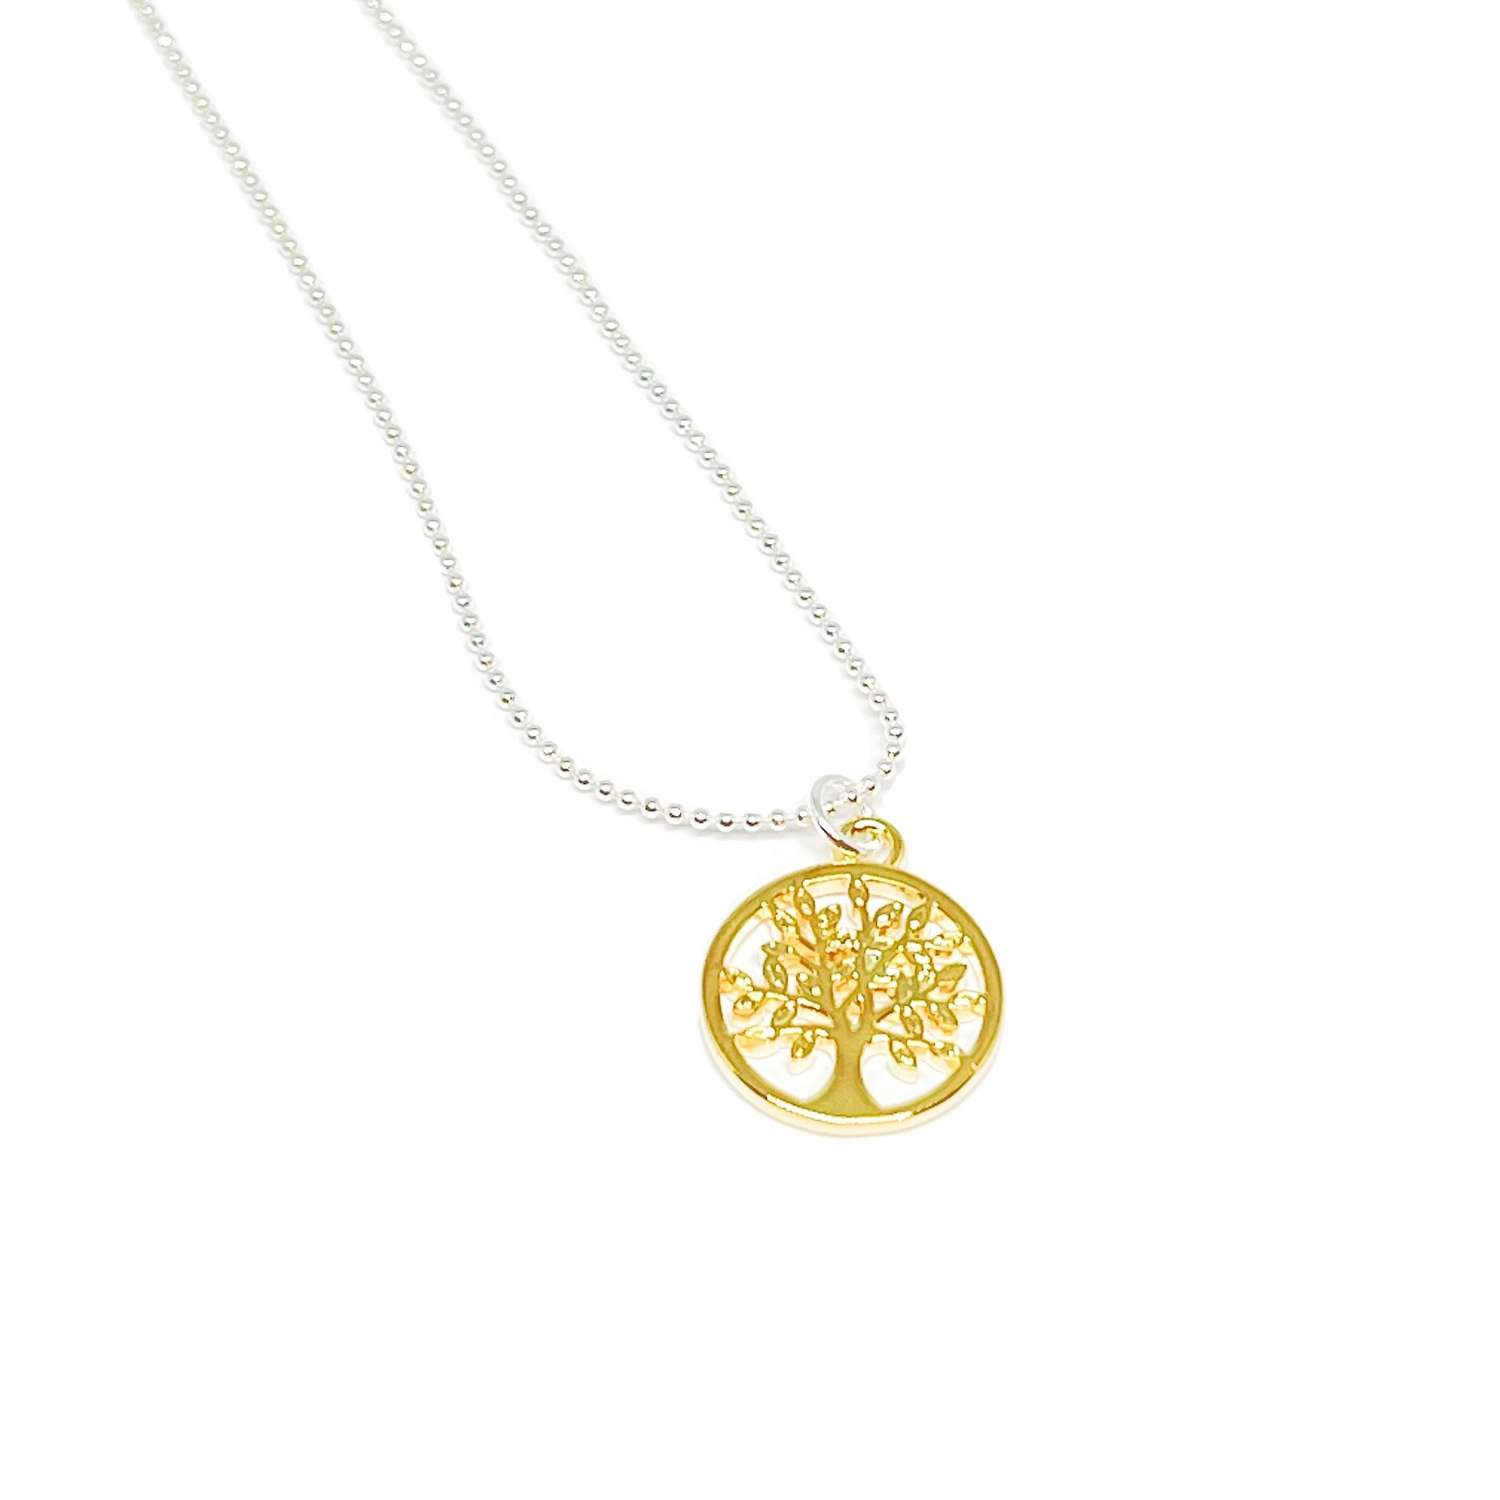 Taylor Tree Necklace - Gold